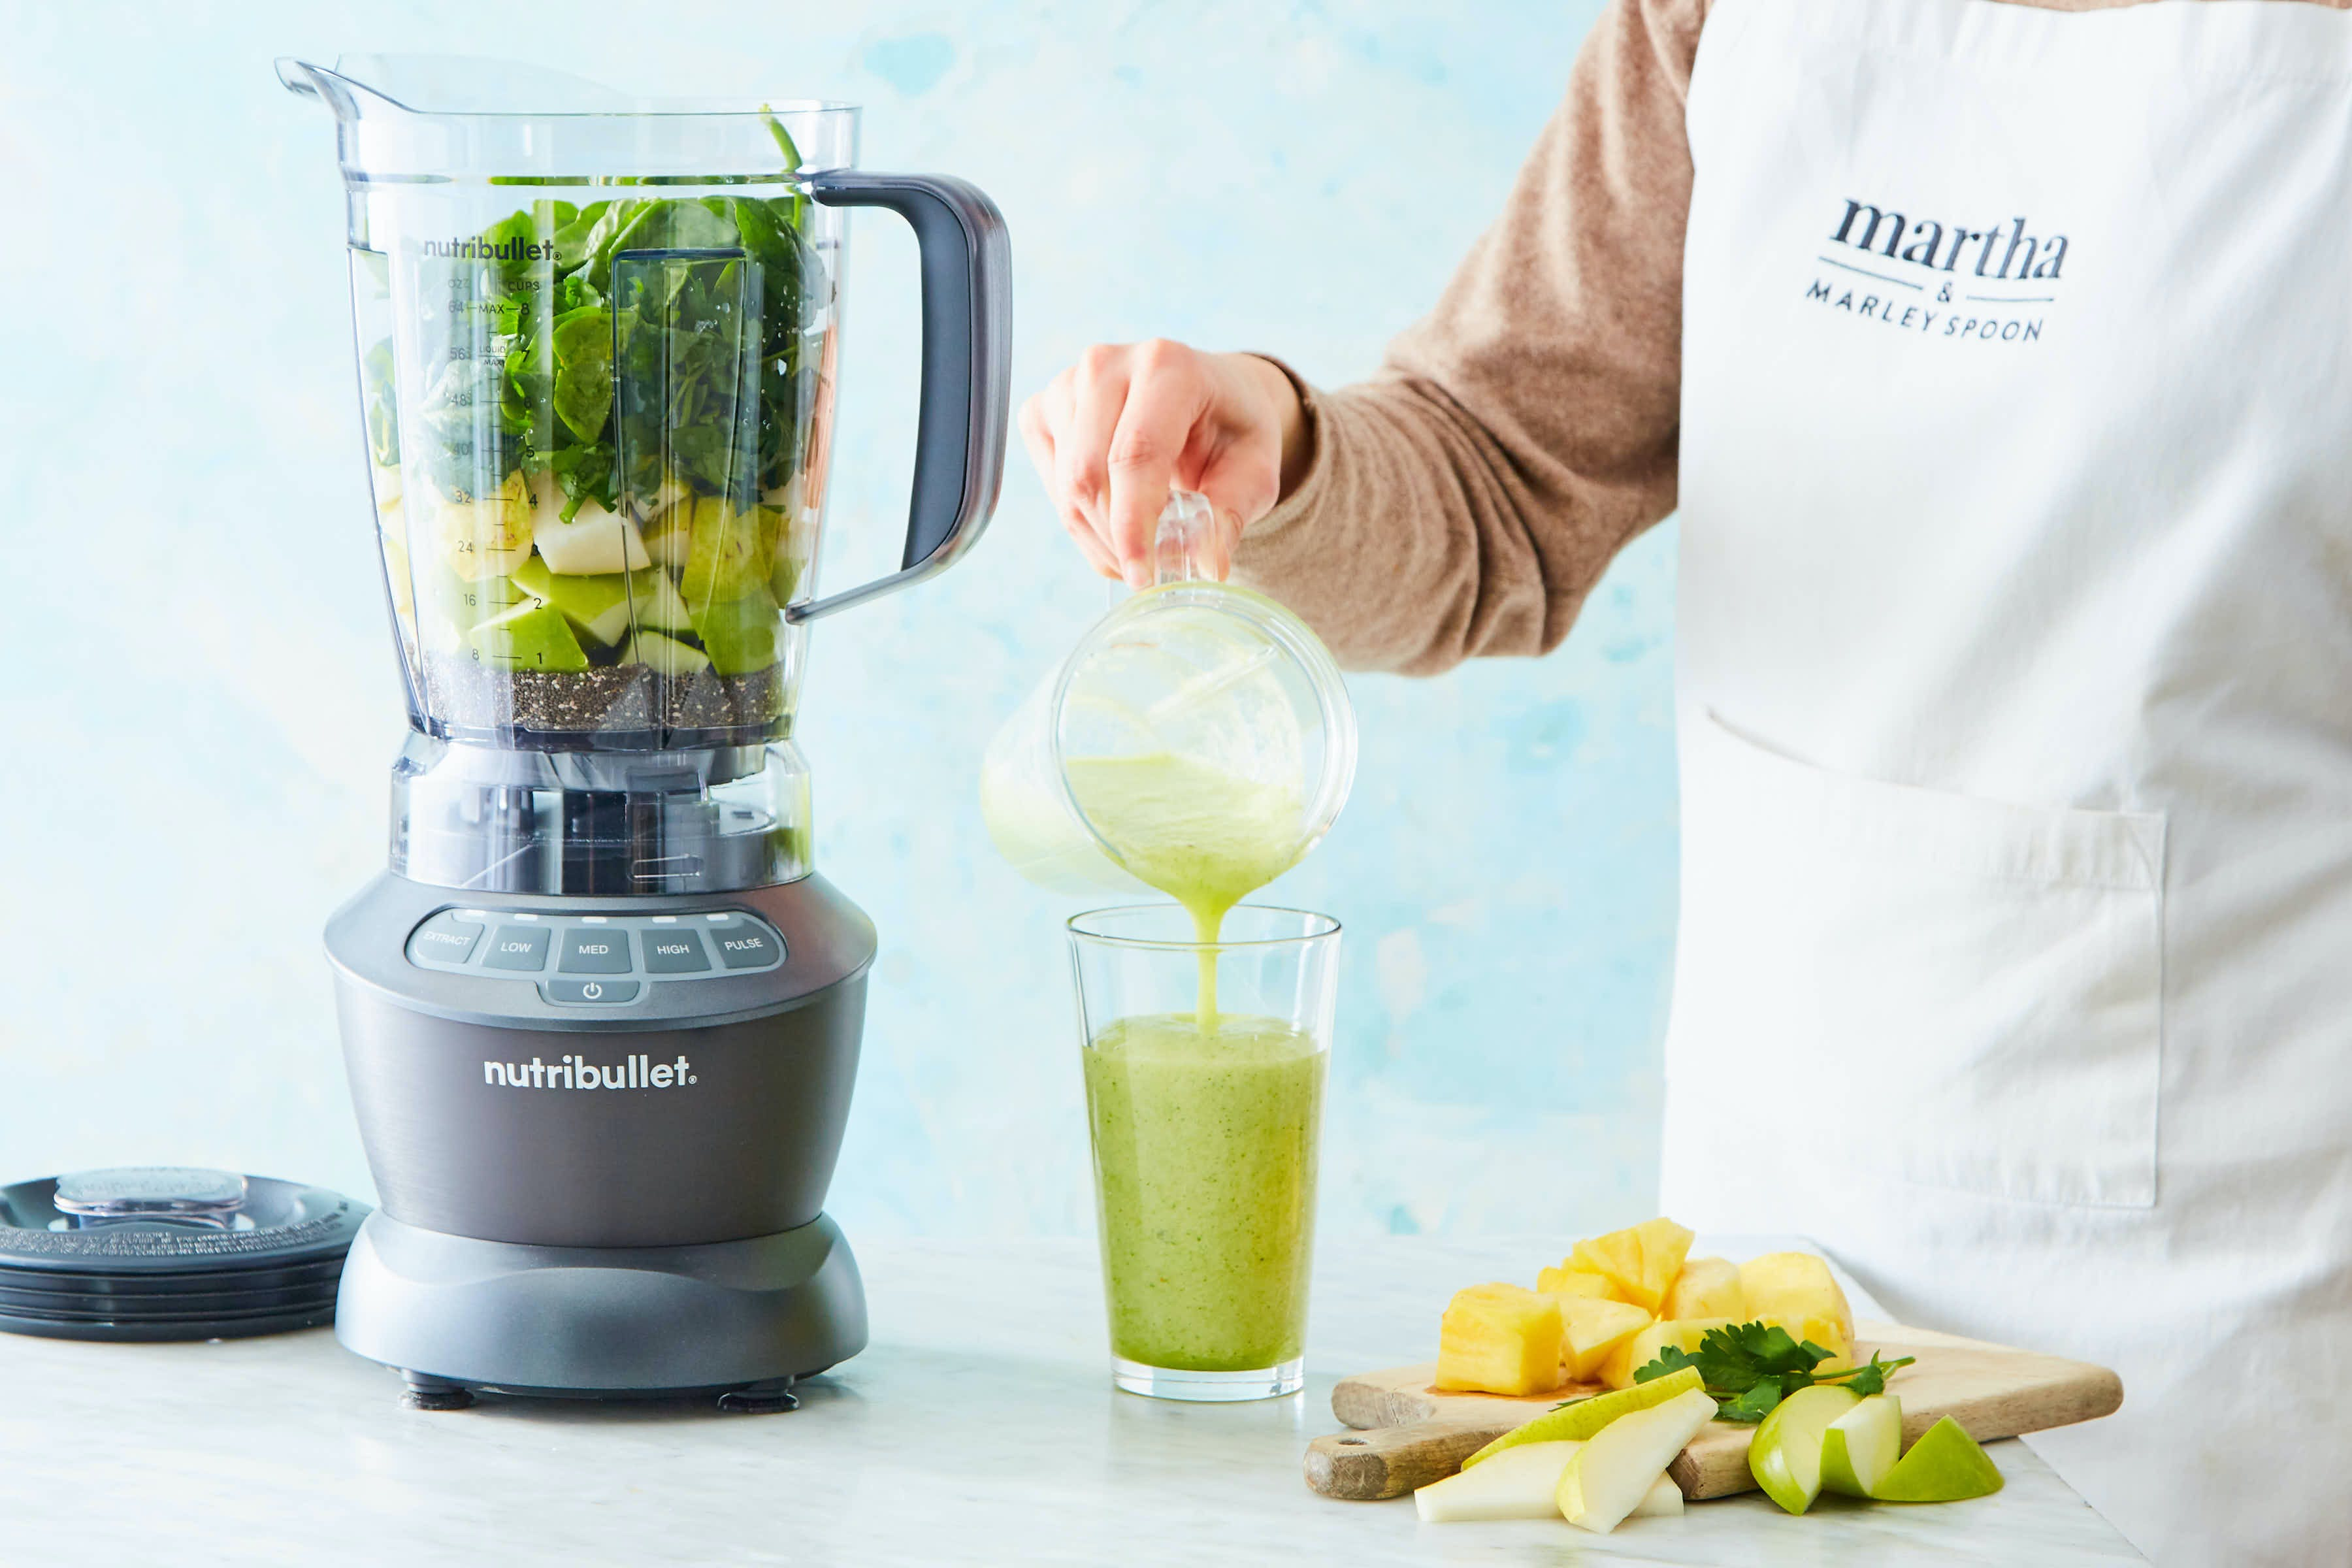 5 Hyper Healthy Ingredients to Add to Your Smoothies Right Now